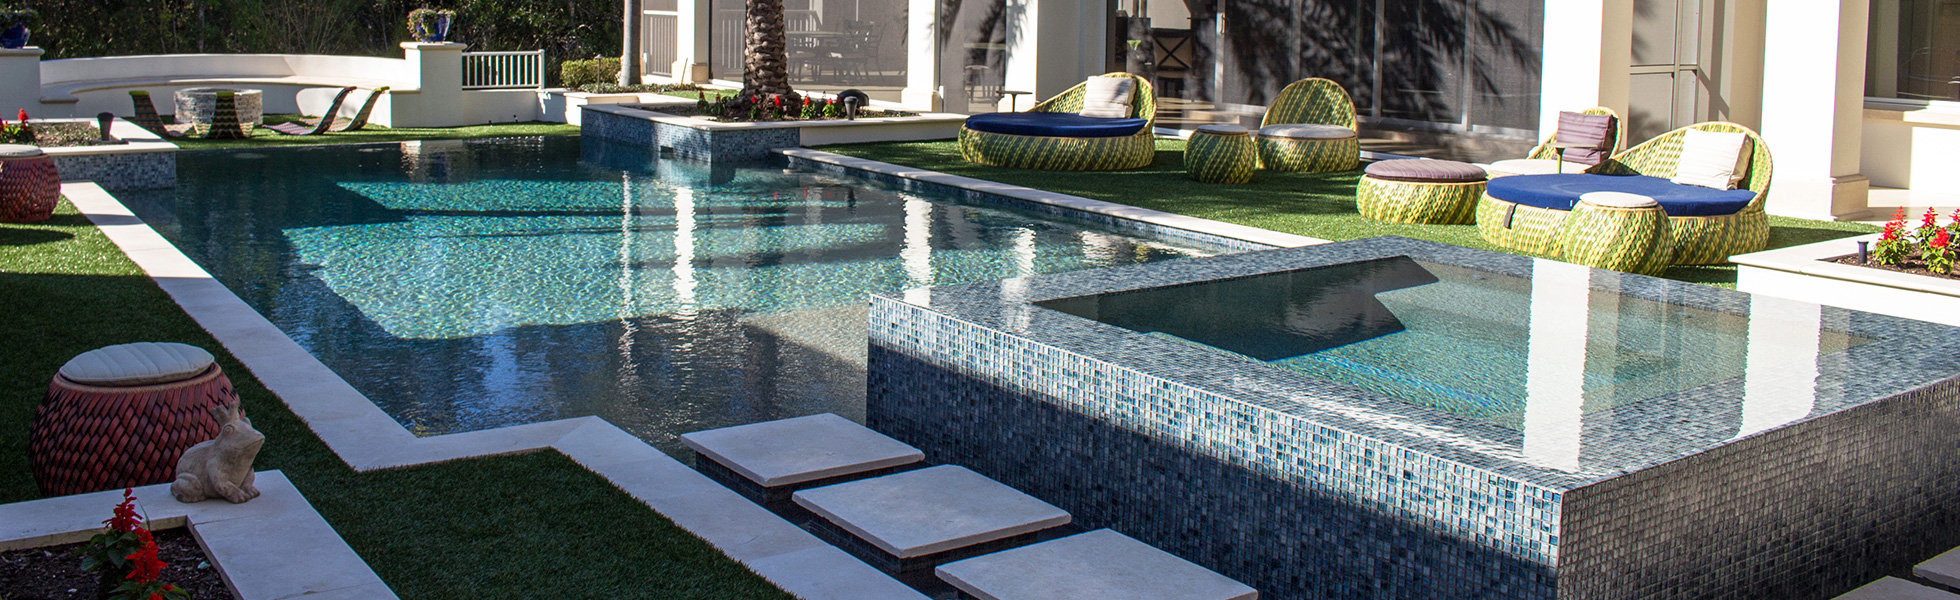 Luxury Pool Spa Oasis By Paradise Pools Design